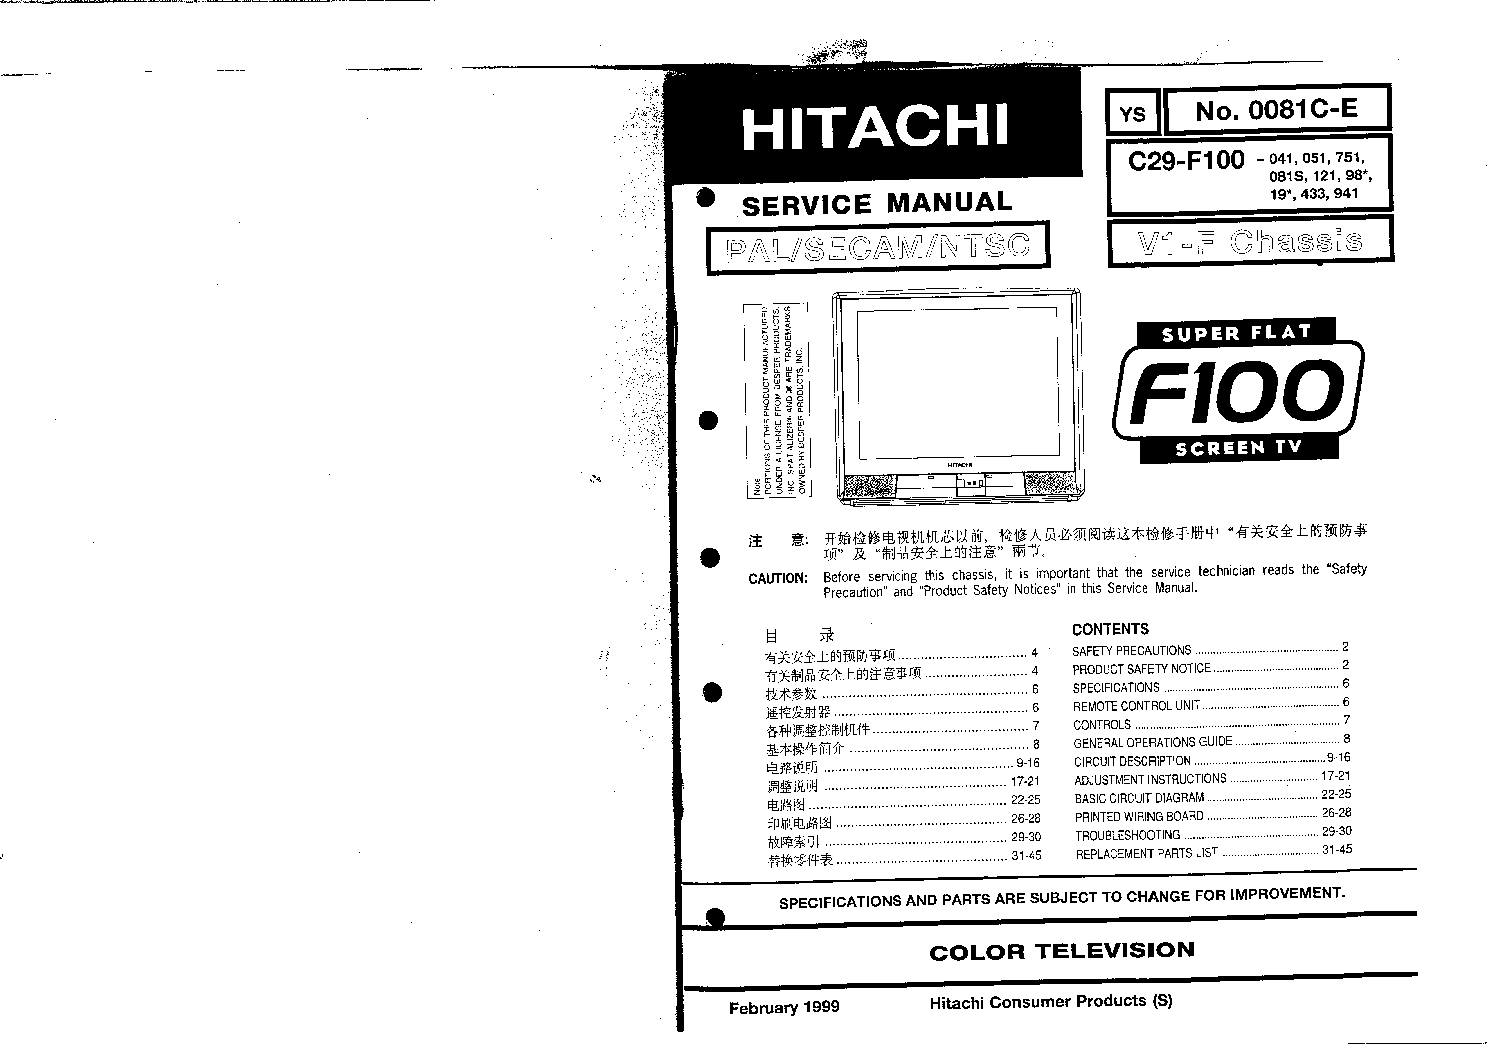 HITACHI CHASSIS V1-F C29F100 Service Manual download